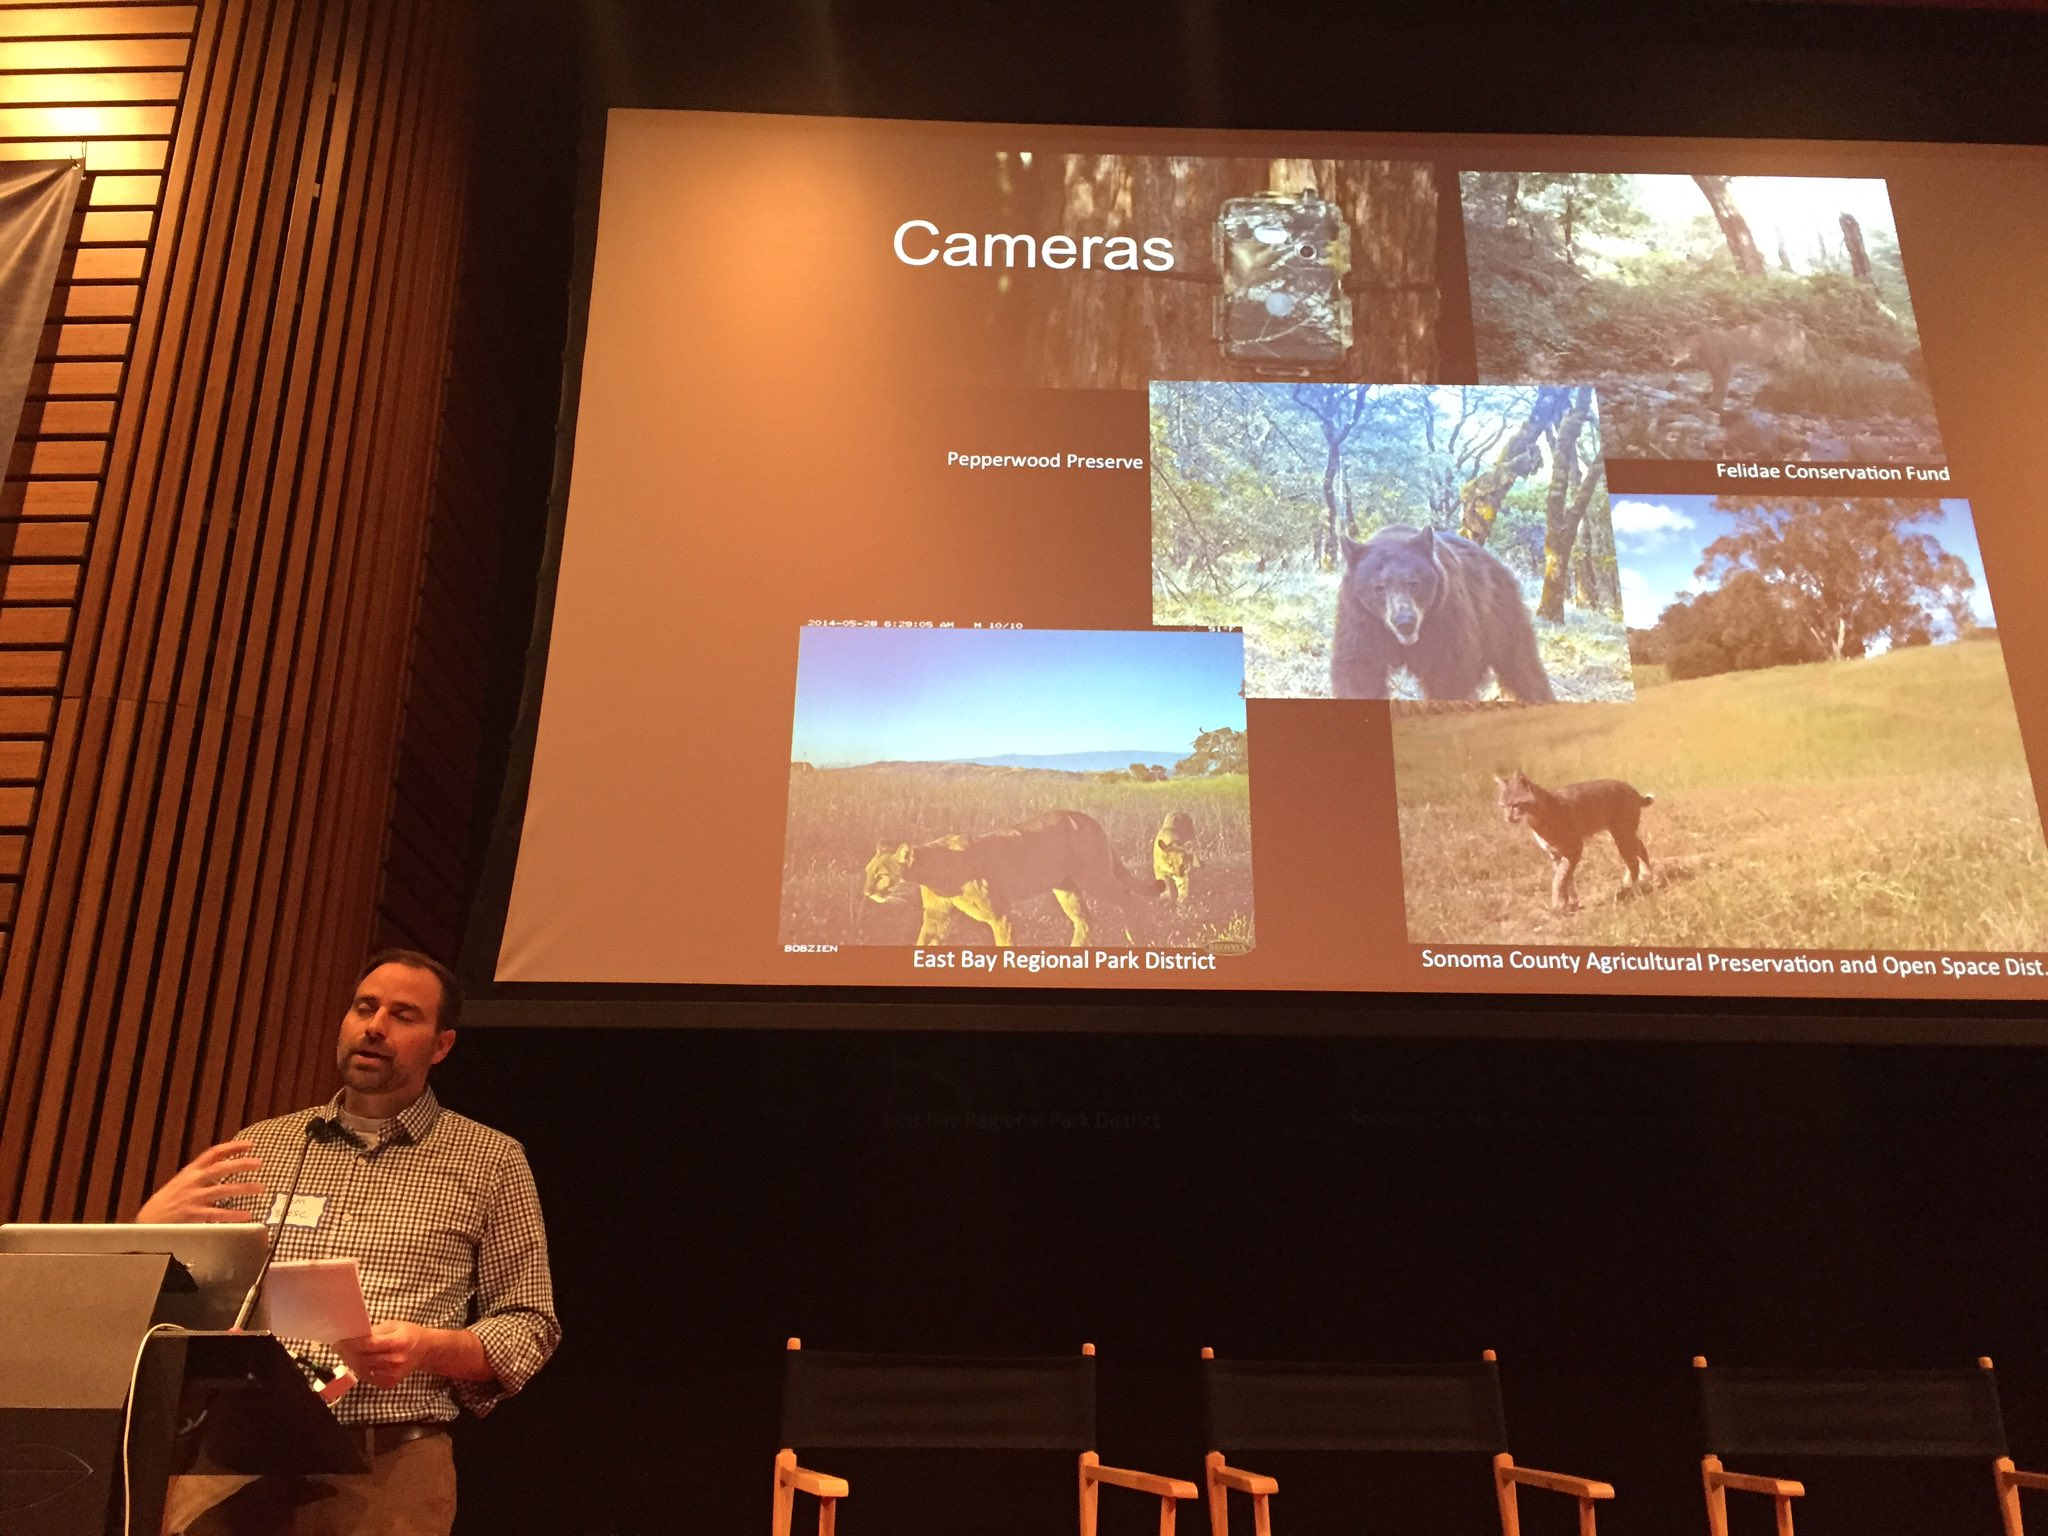 313+ wildlife camera traps in the #BAYAREA to understand where animals roam. Tom Robinson setting the context for #oscwildlife https://t.co/bkLcg4sPrl